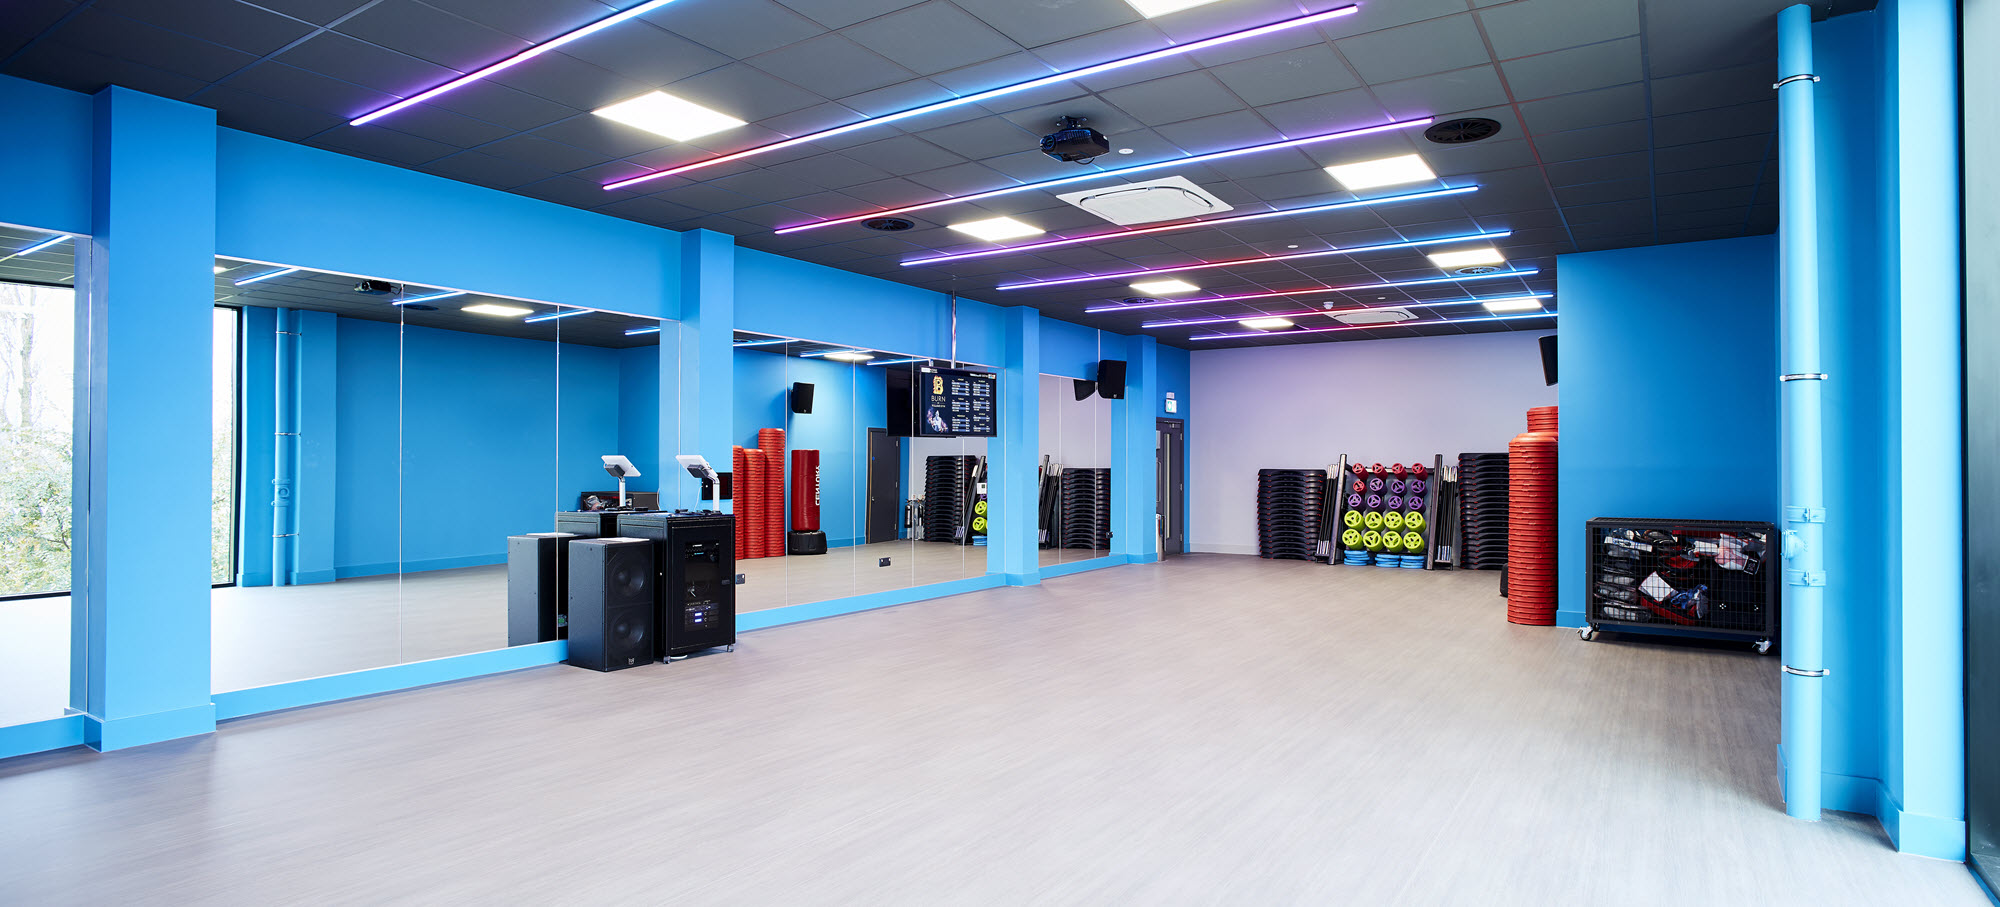 24 hour gym in portsmouth with classes pool village gym - 24 hour fitness with swimming pool locations ...